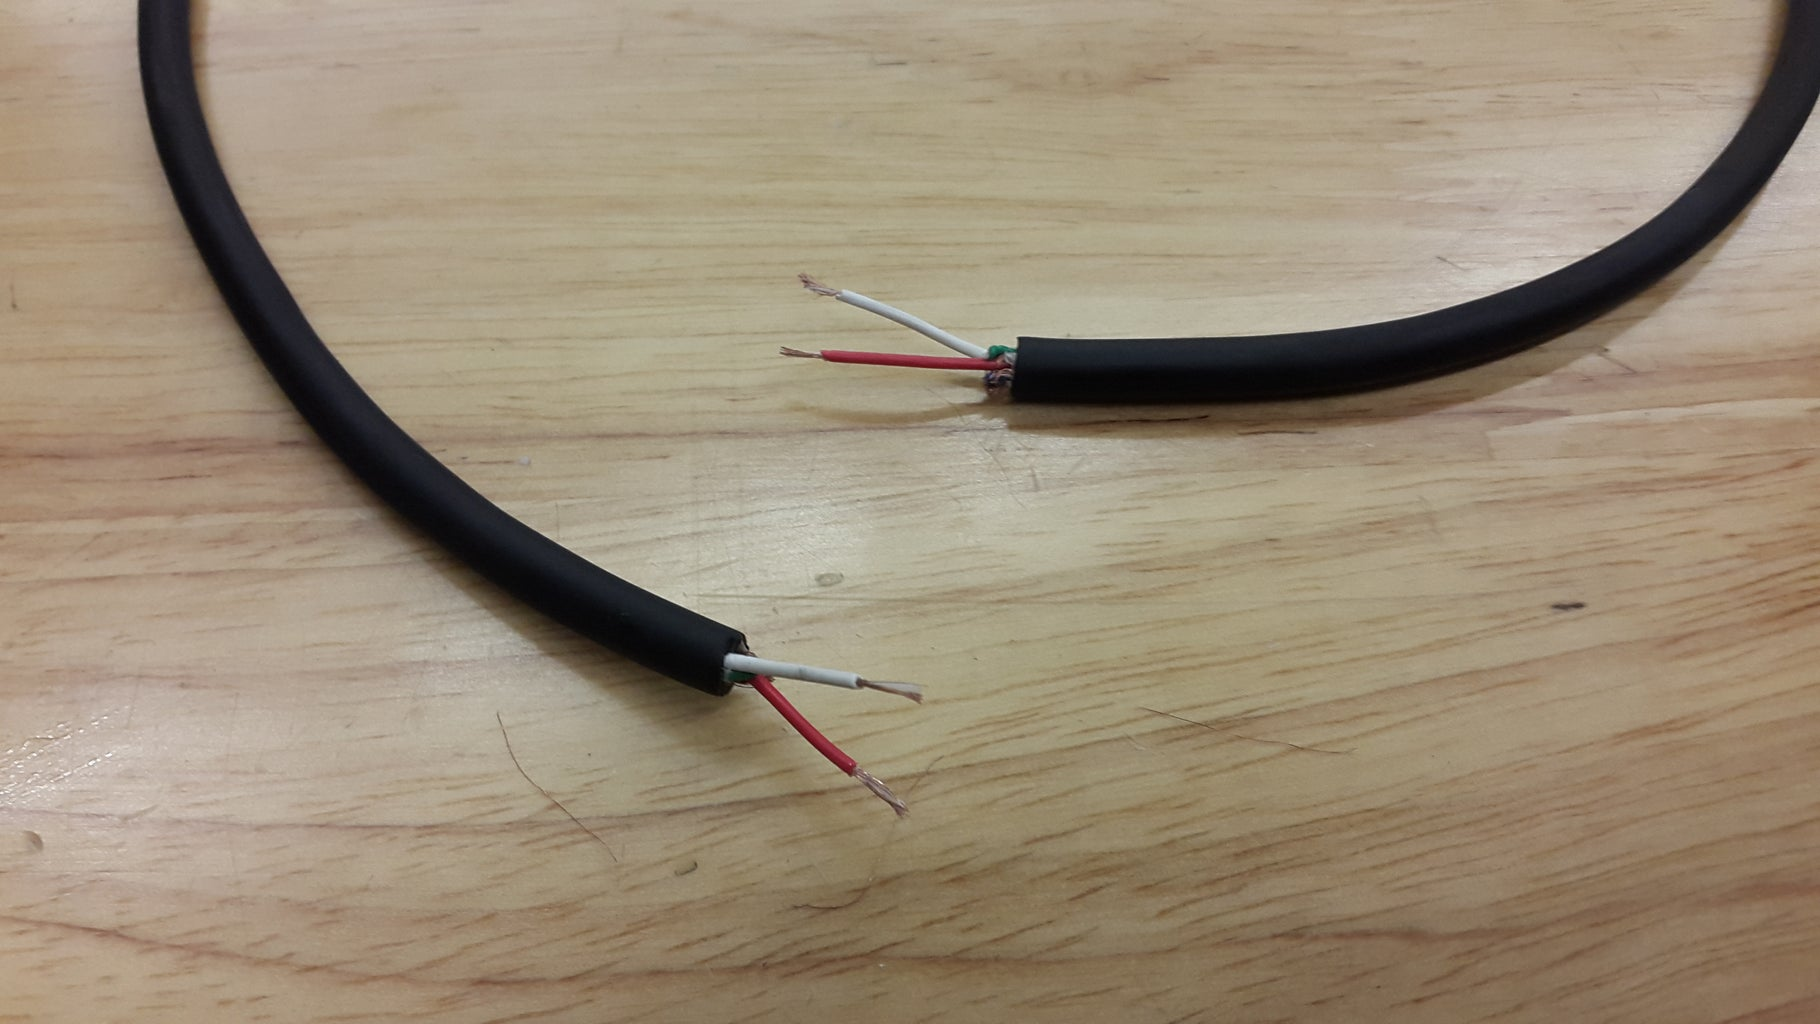 Connect Cable to Motor